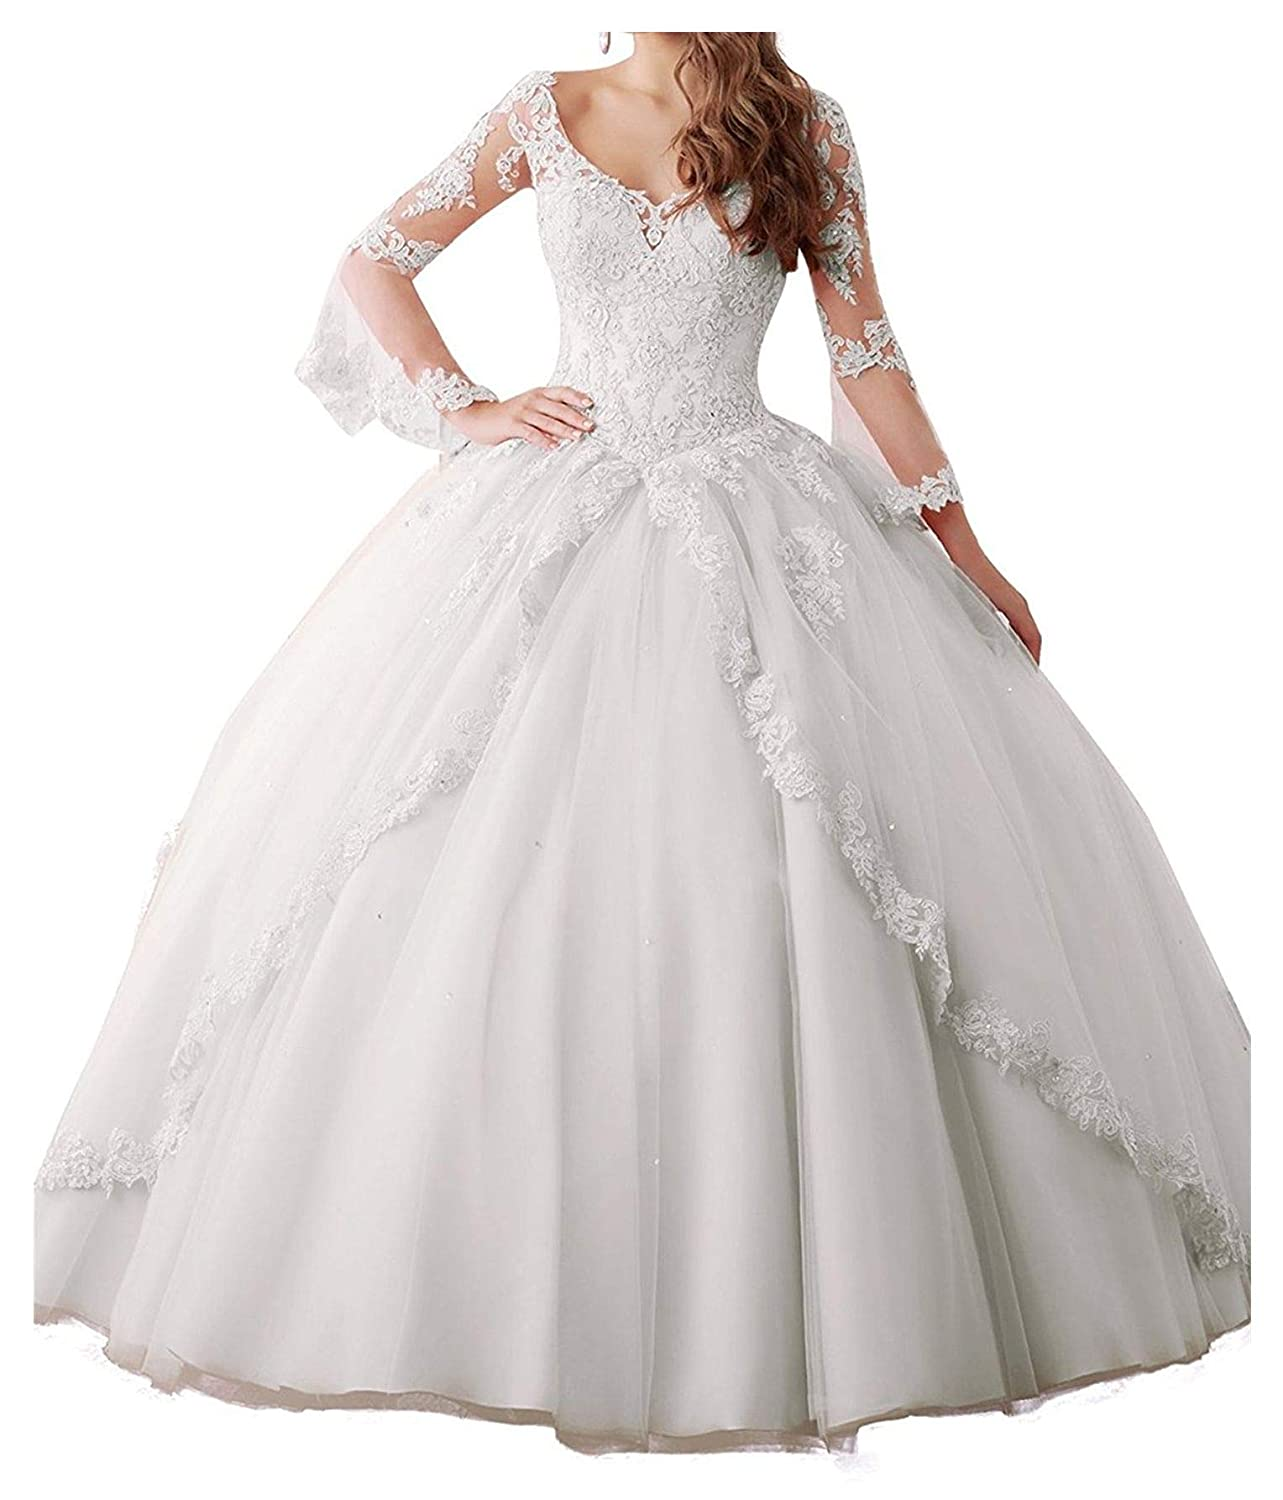 White Yang Women Sheer Lace Long Sleeve Ball Gowns Tulle Beaded Girls Quinceanera Dresses